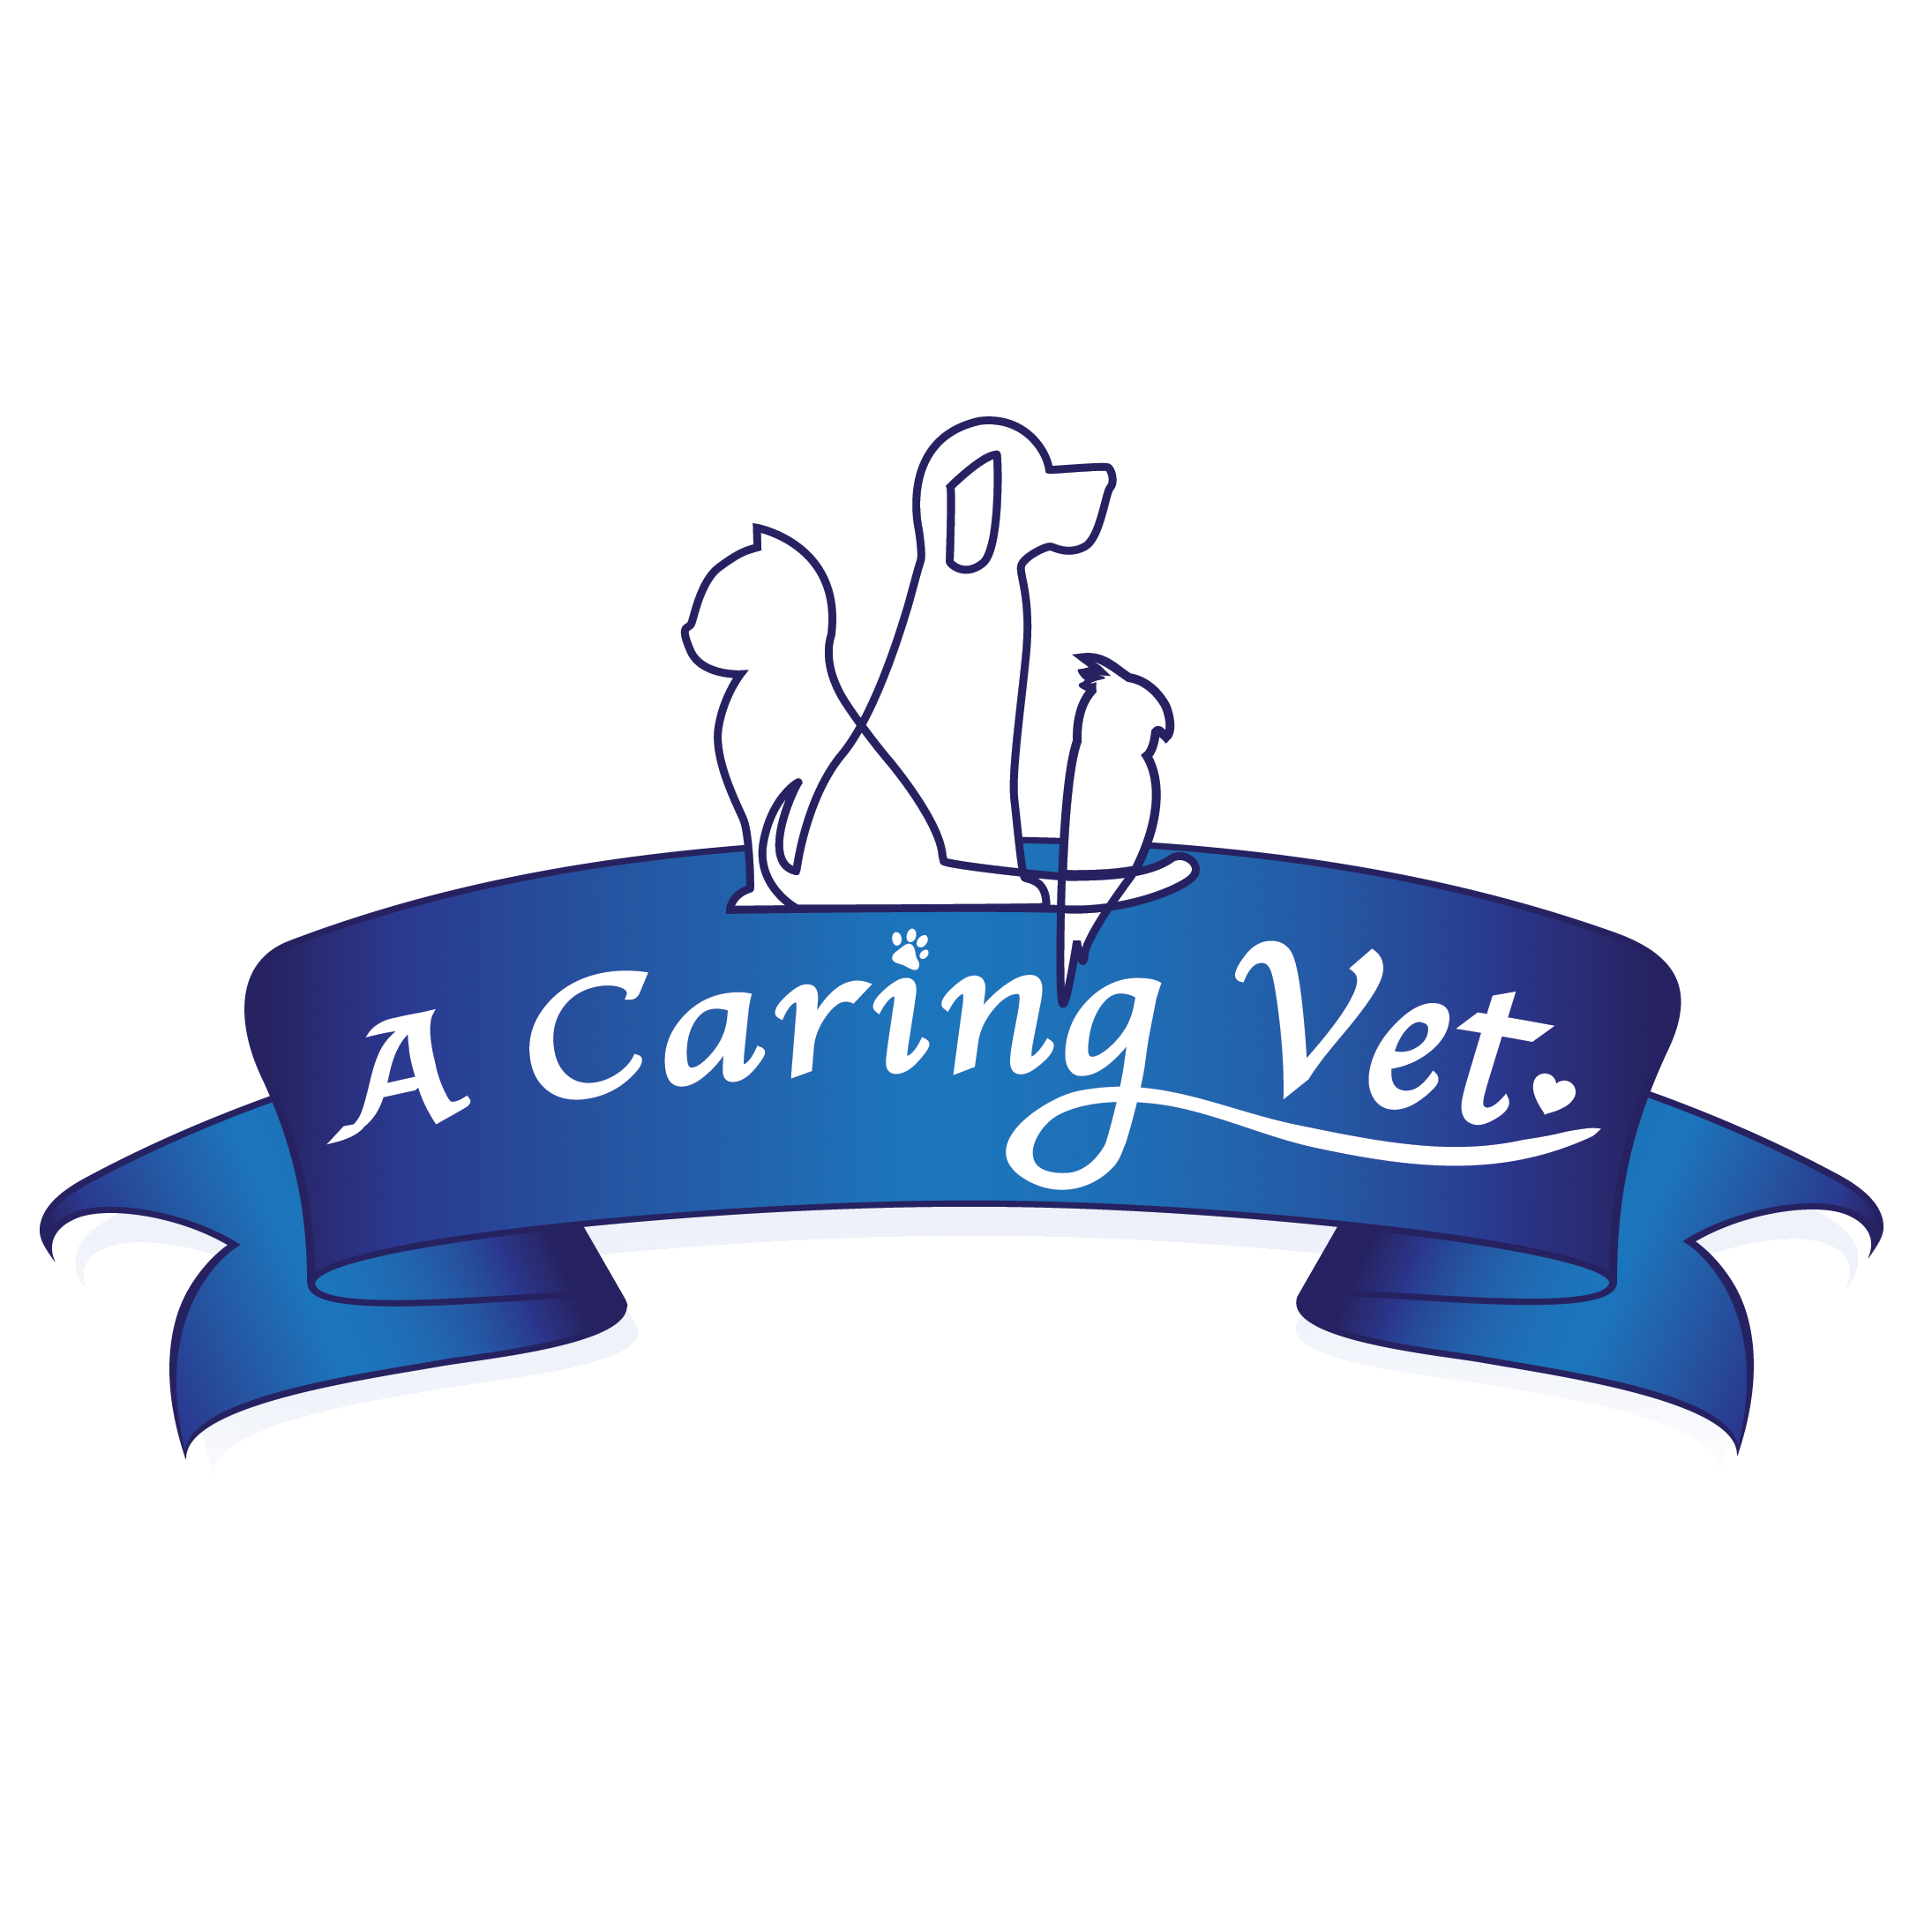 A Caring Vet - ad image